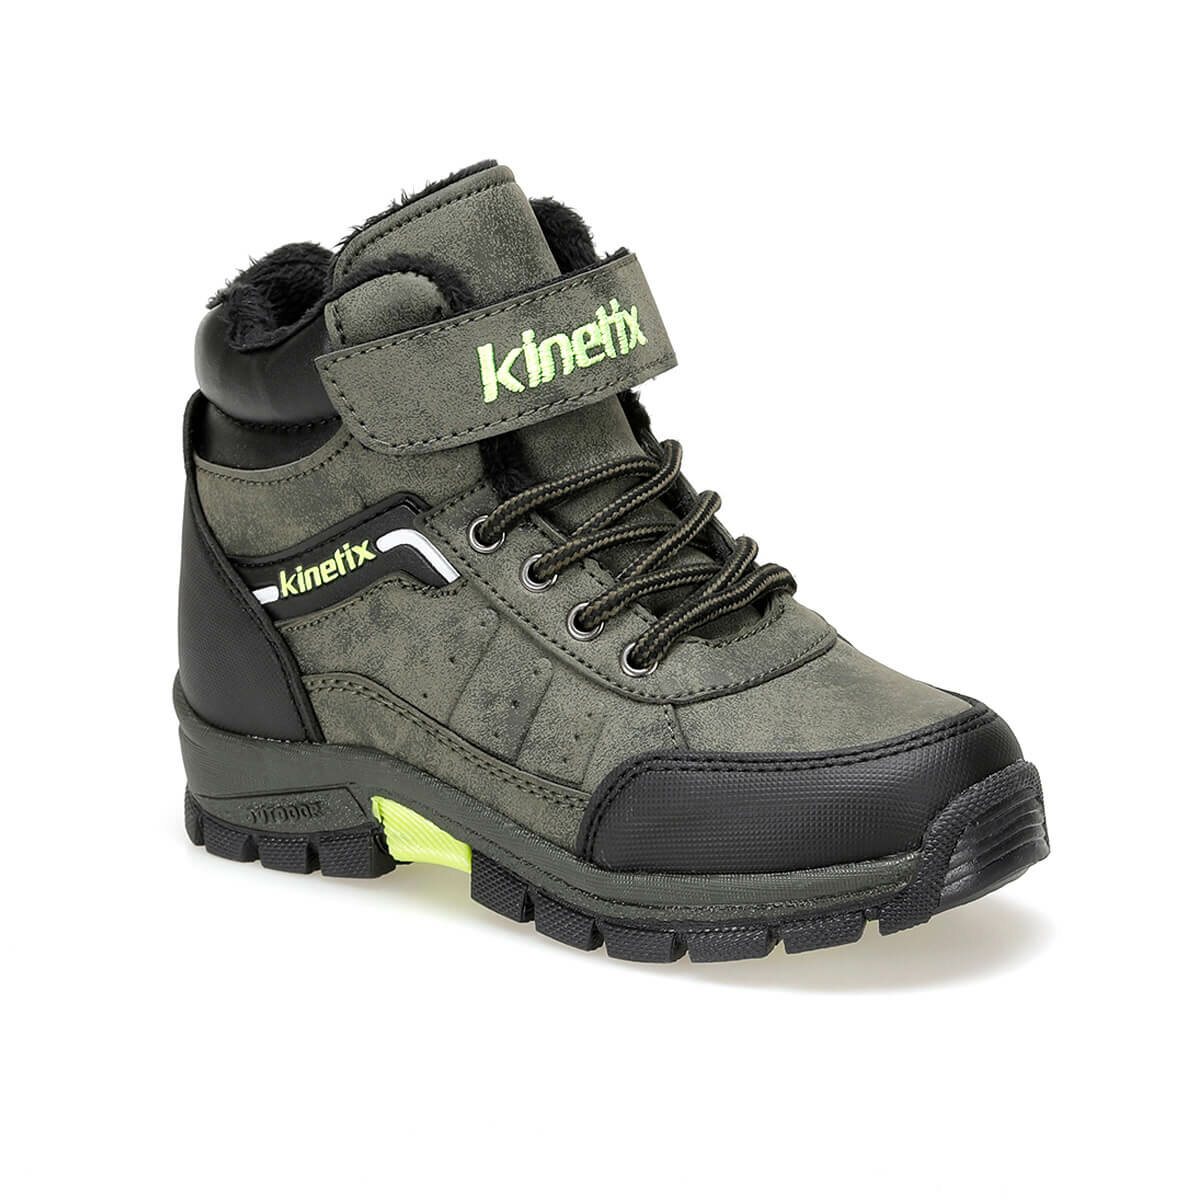 FLO NEGRO HI 9PR Khaki Male Child Outdoor KINETIX